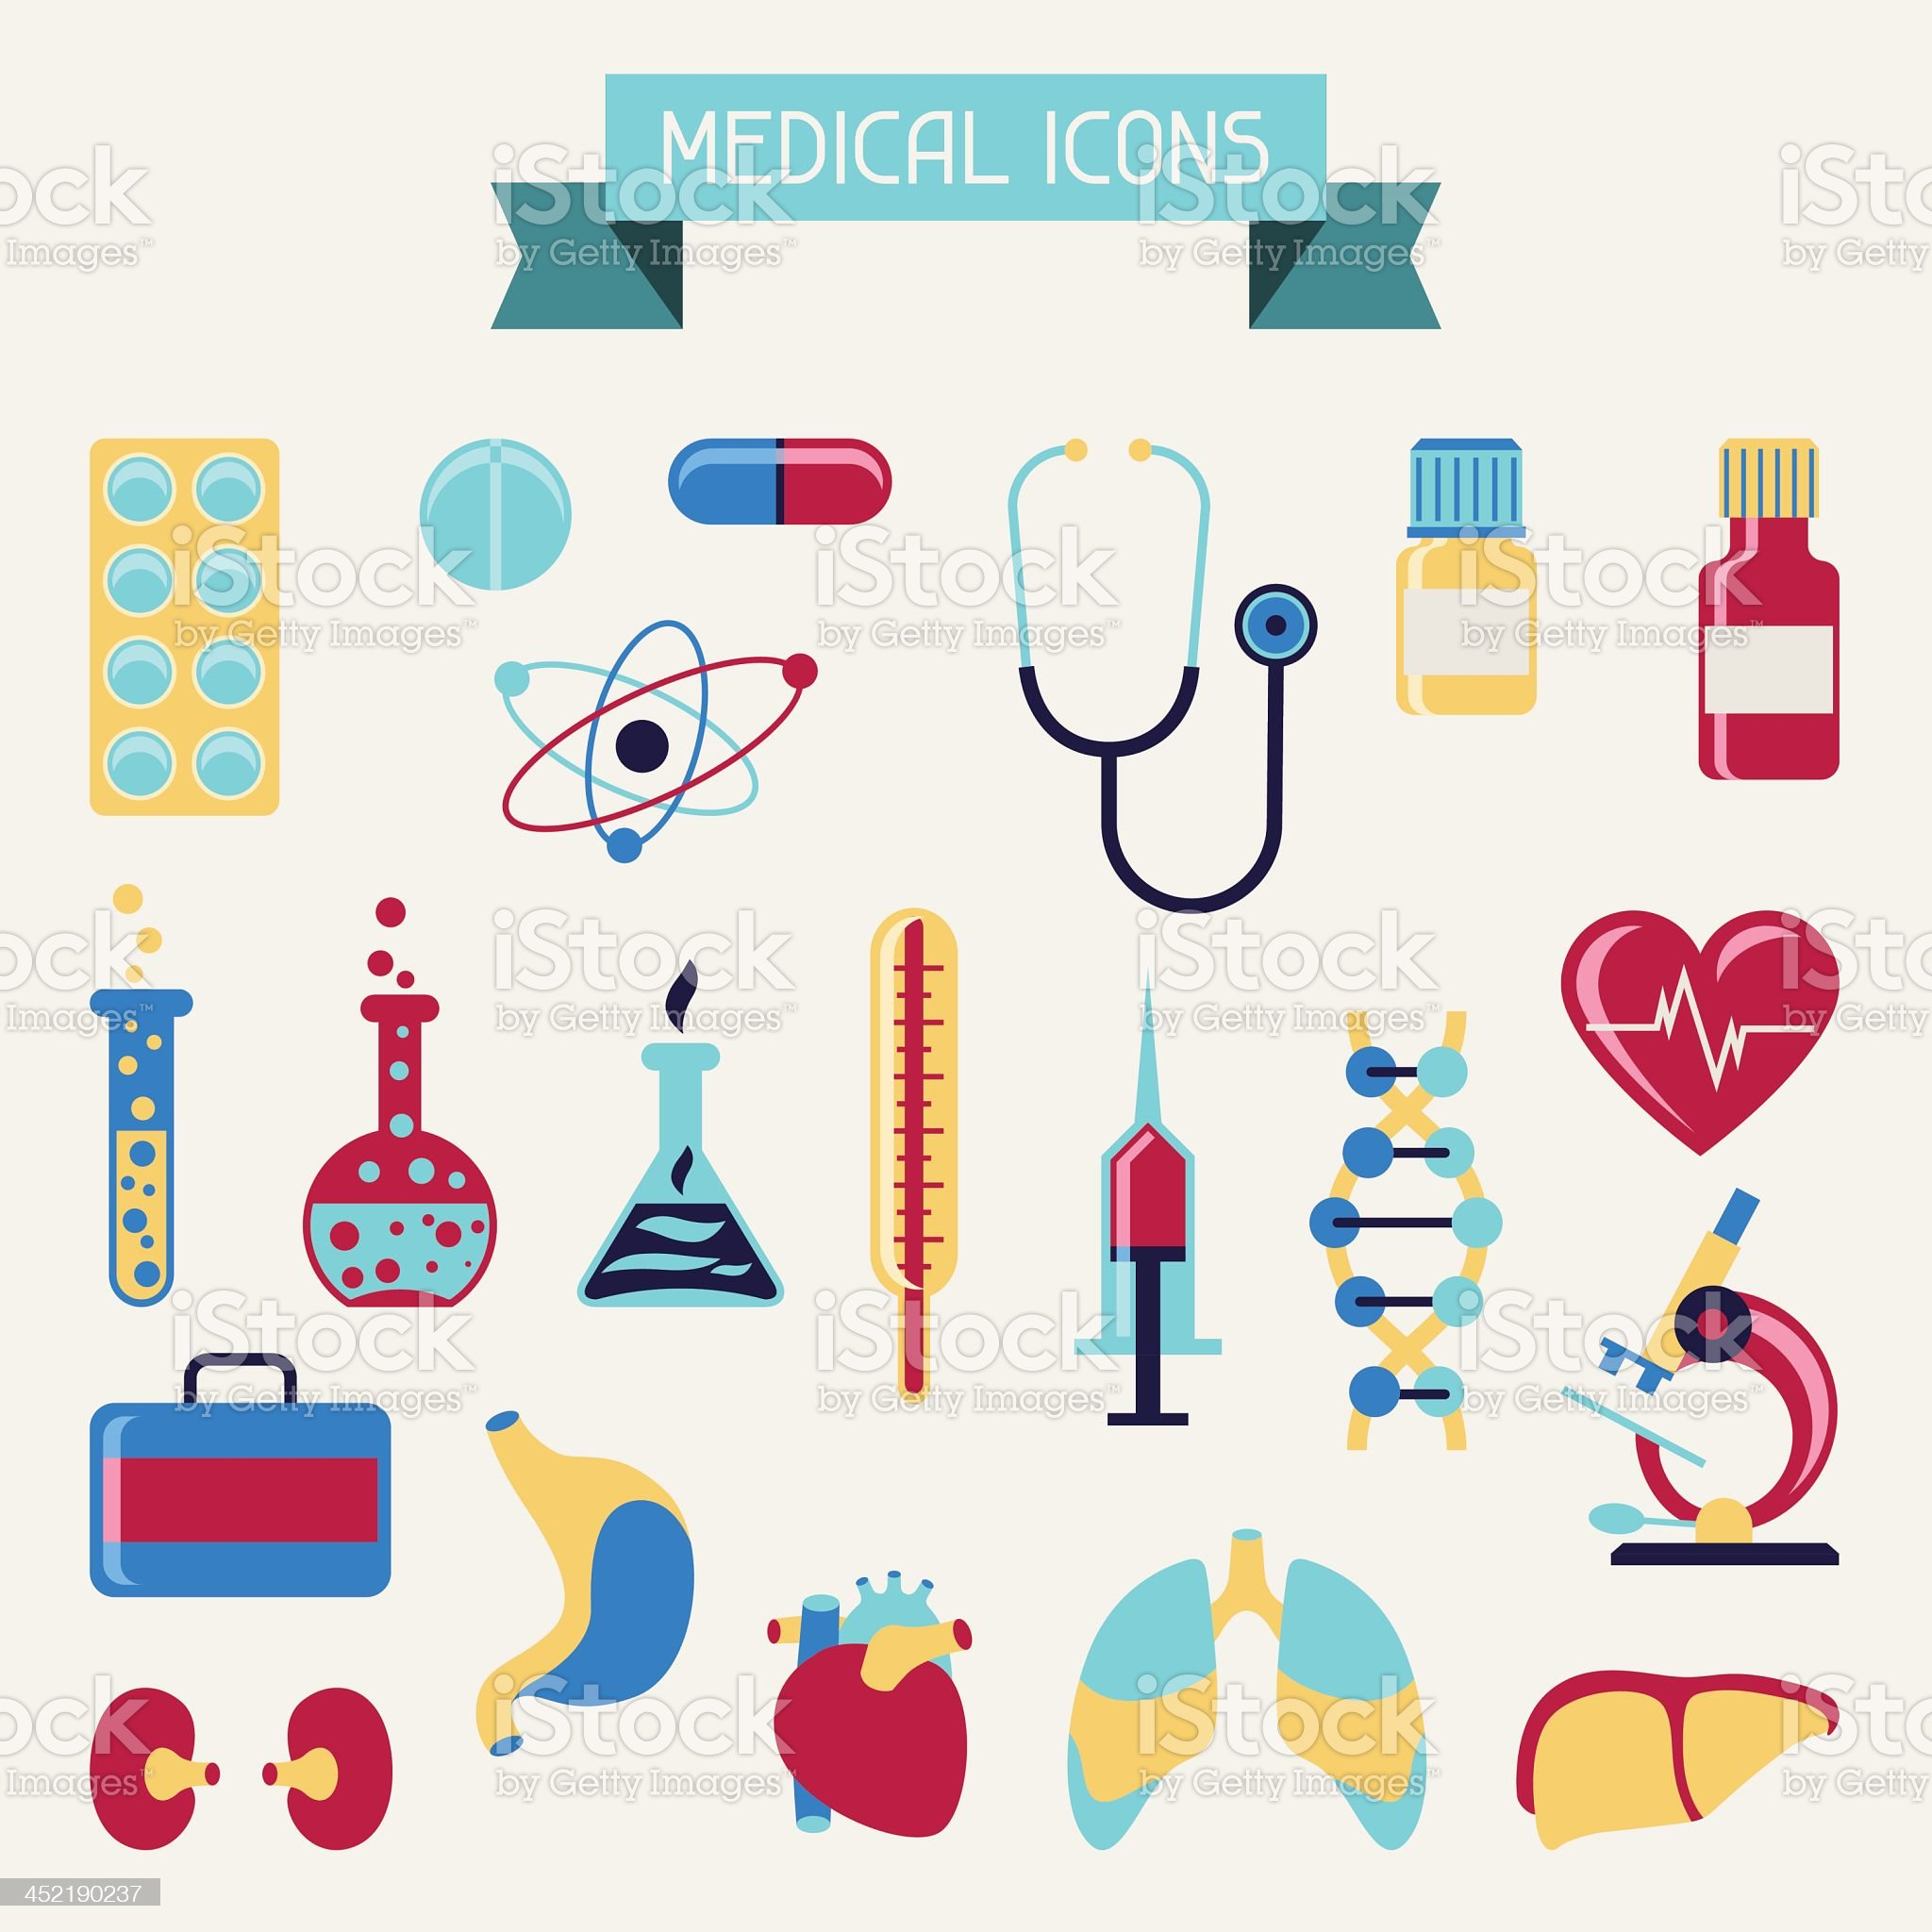 Medical and health care icons set. royalty-free stock vector art